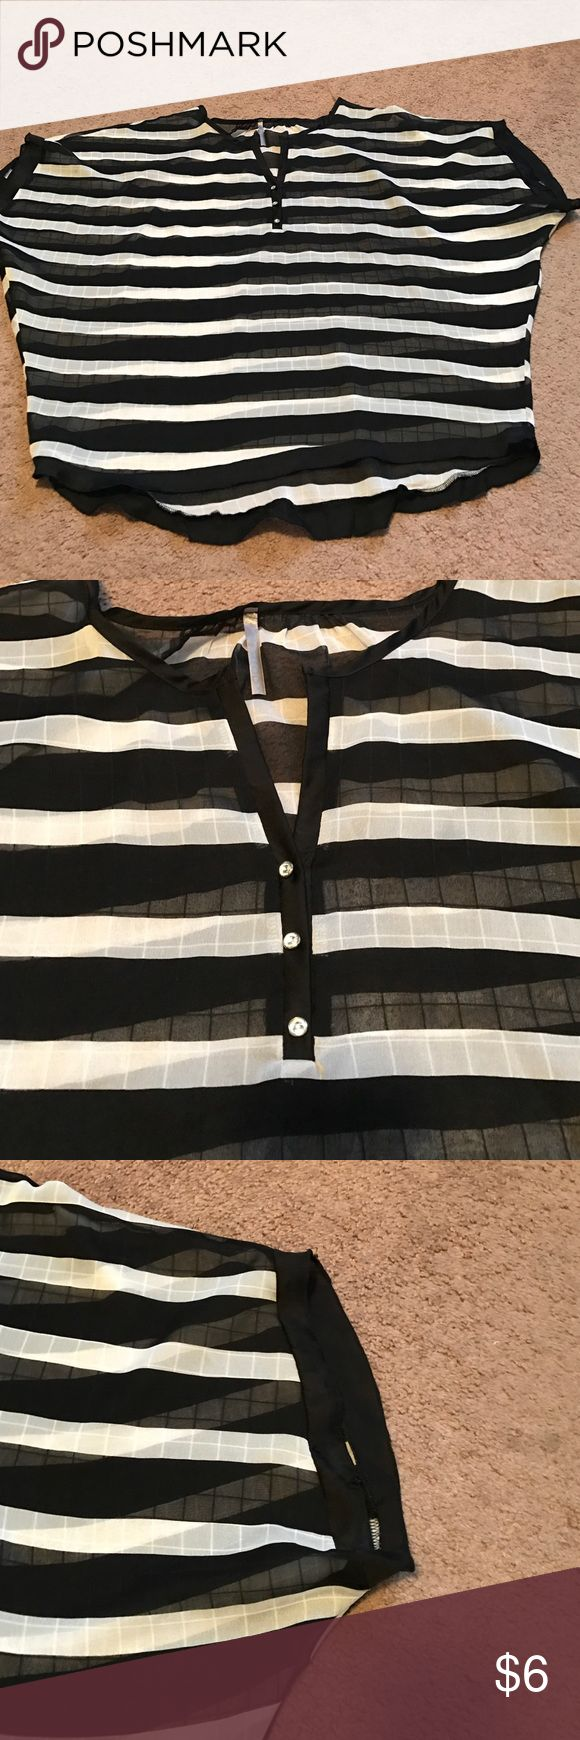 Black and white striped see-through women's top Gently used black and white striped V-neck women's top open arms tapered to the waste trdo Tops Blouses